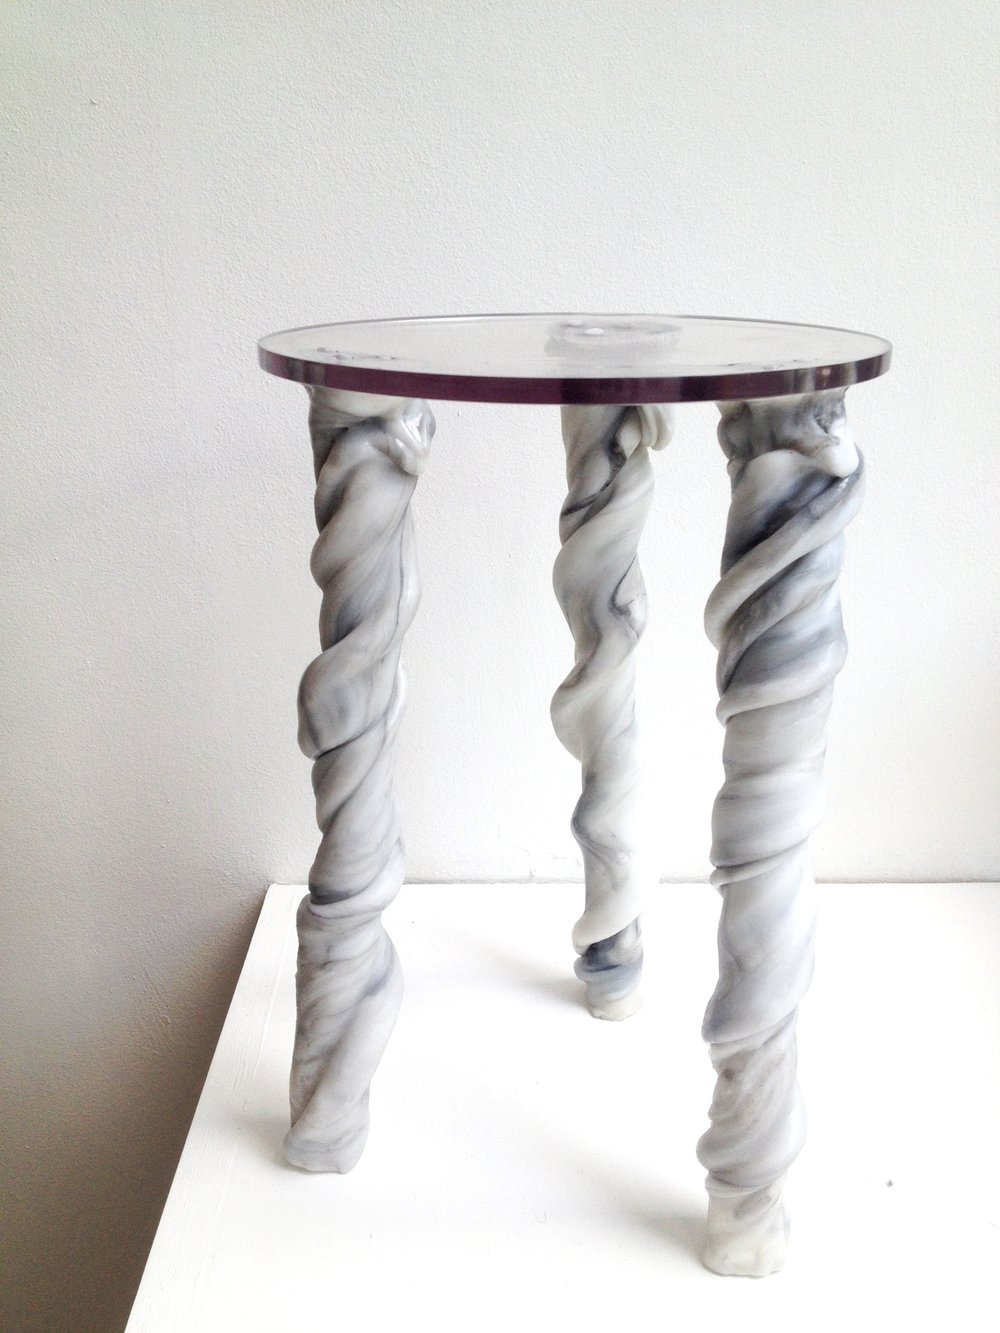 Hollow twisted stool